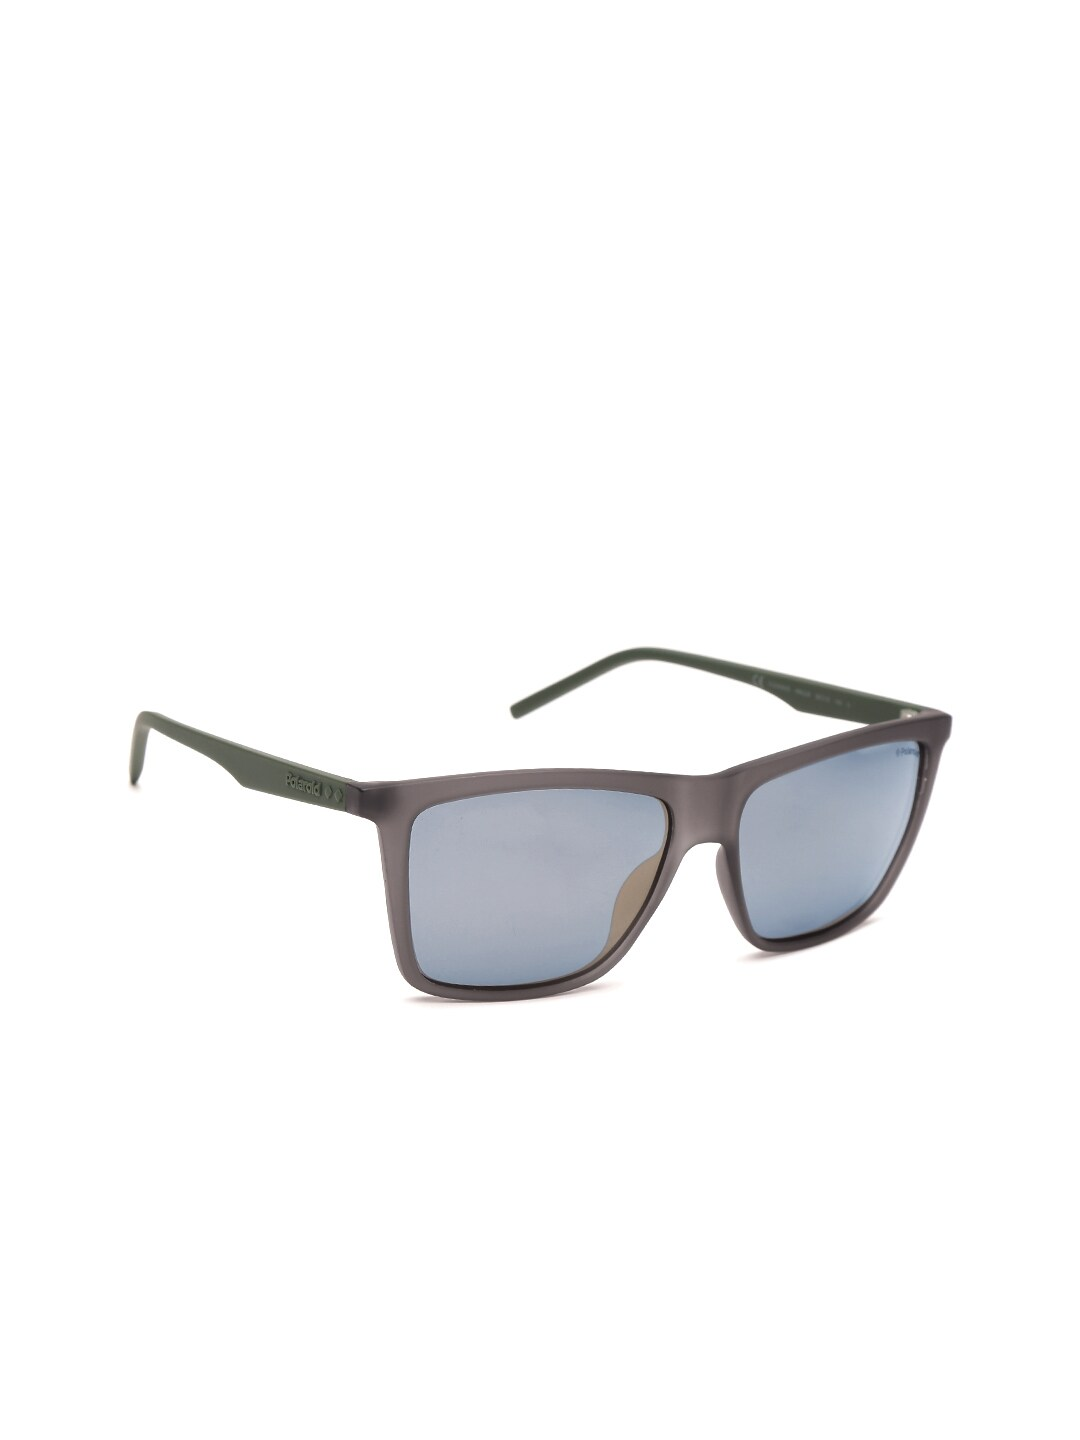 f177aeb3b19 Scarves Sunglasses S - Buy Scarves Sunglasses S online in India